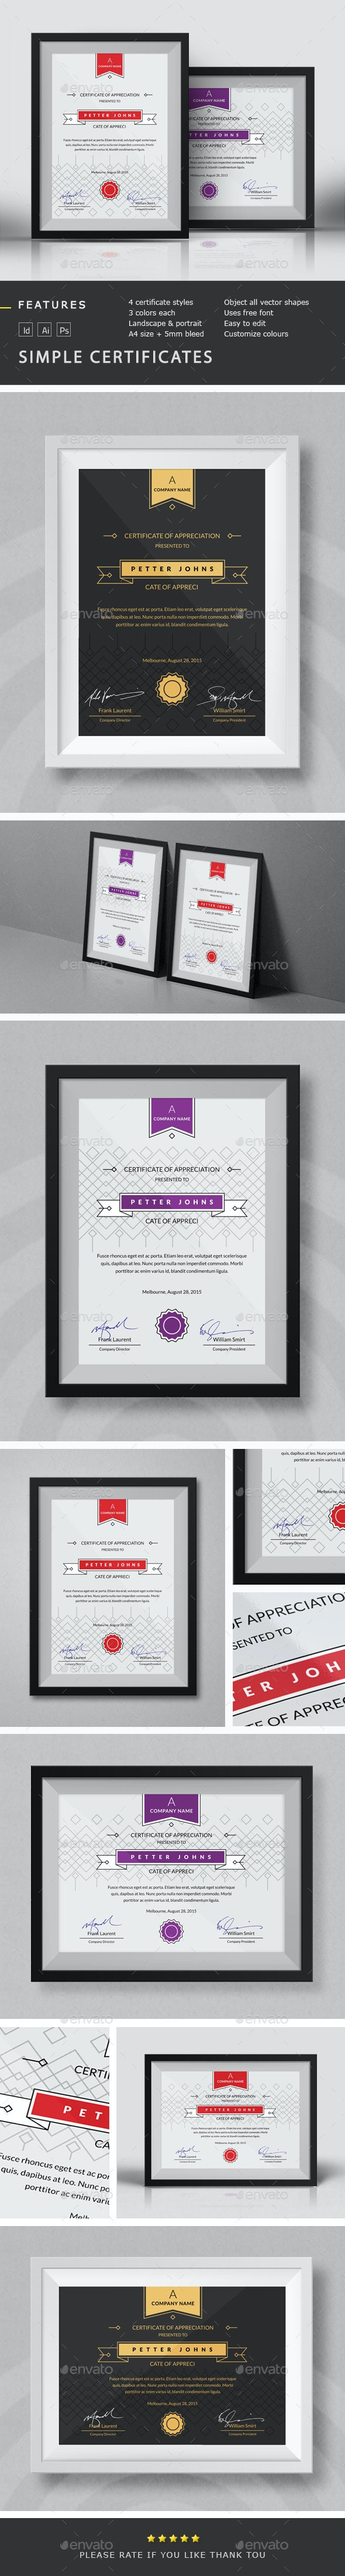 Simple Certificates Template - Certificates Stationery